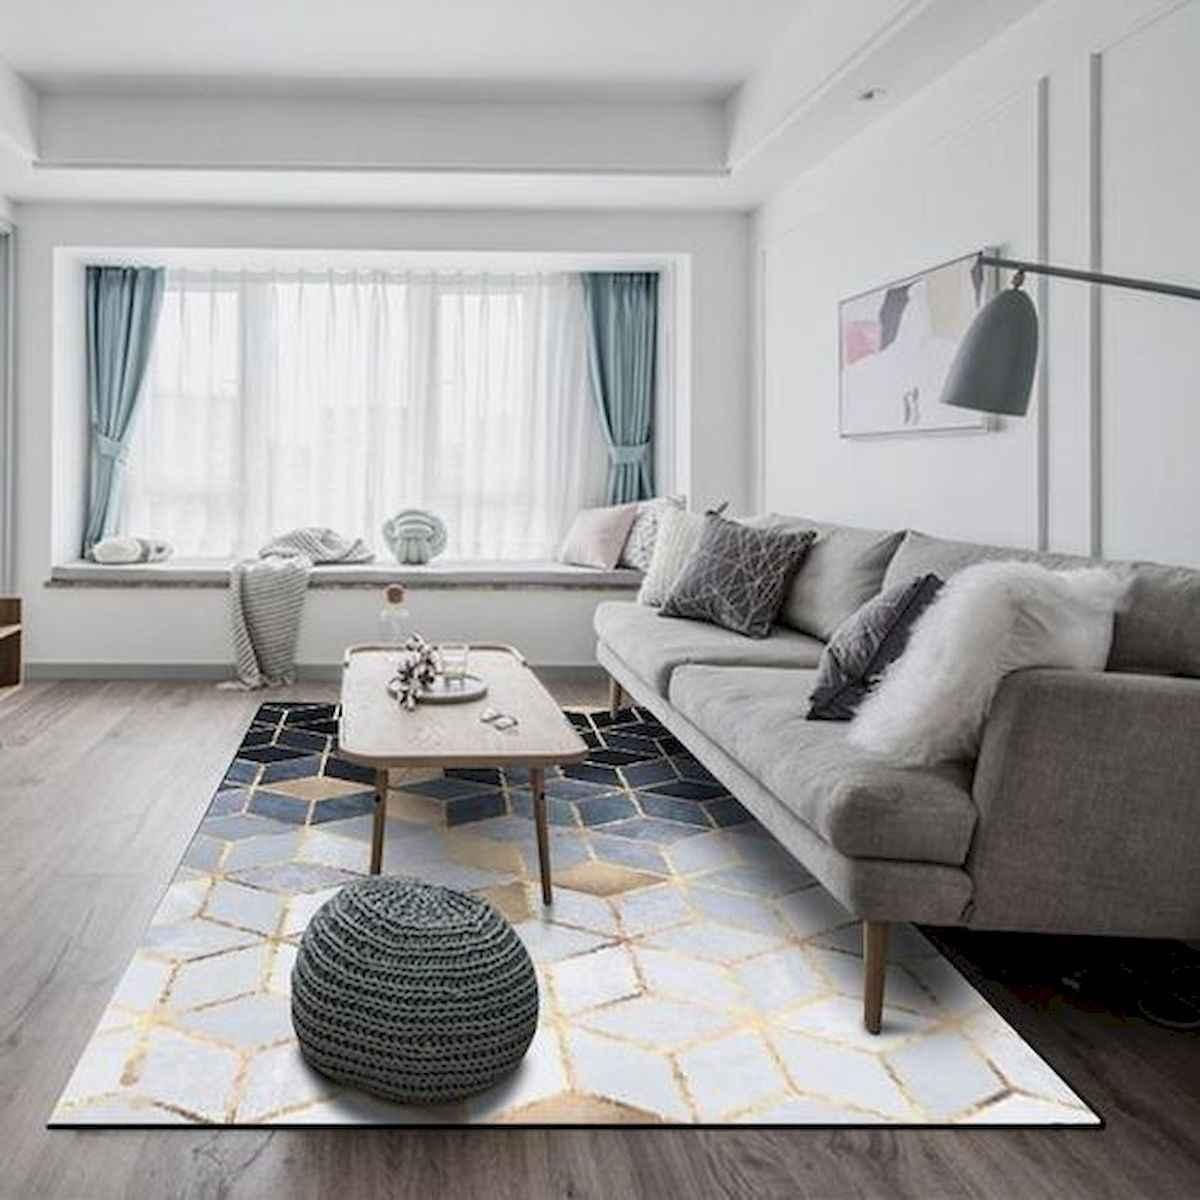 70 Stunning Grey White Black Living Room Decor Ideas And Remodel (1)